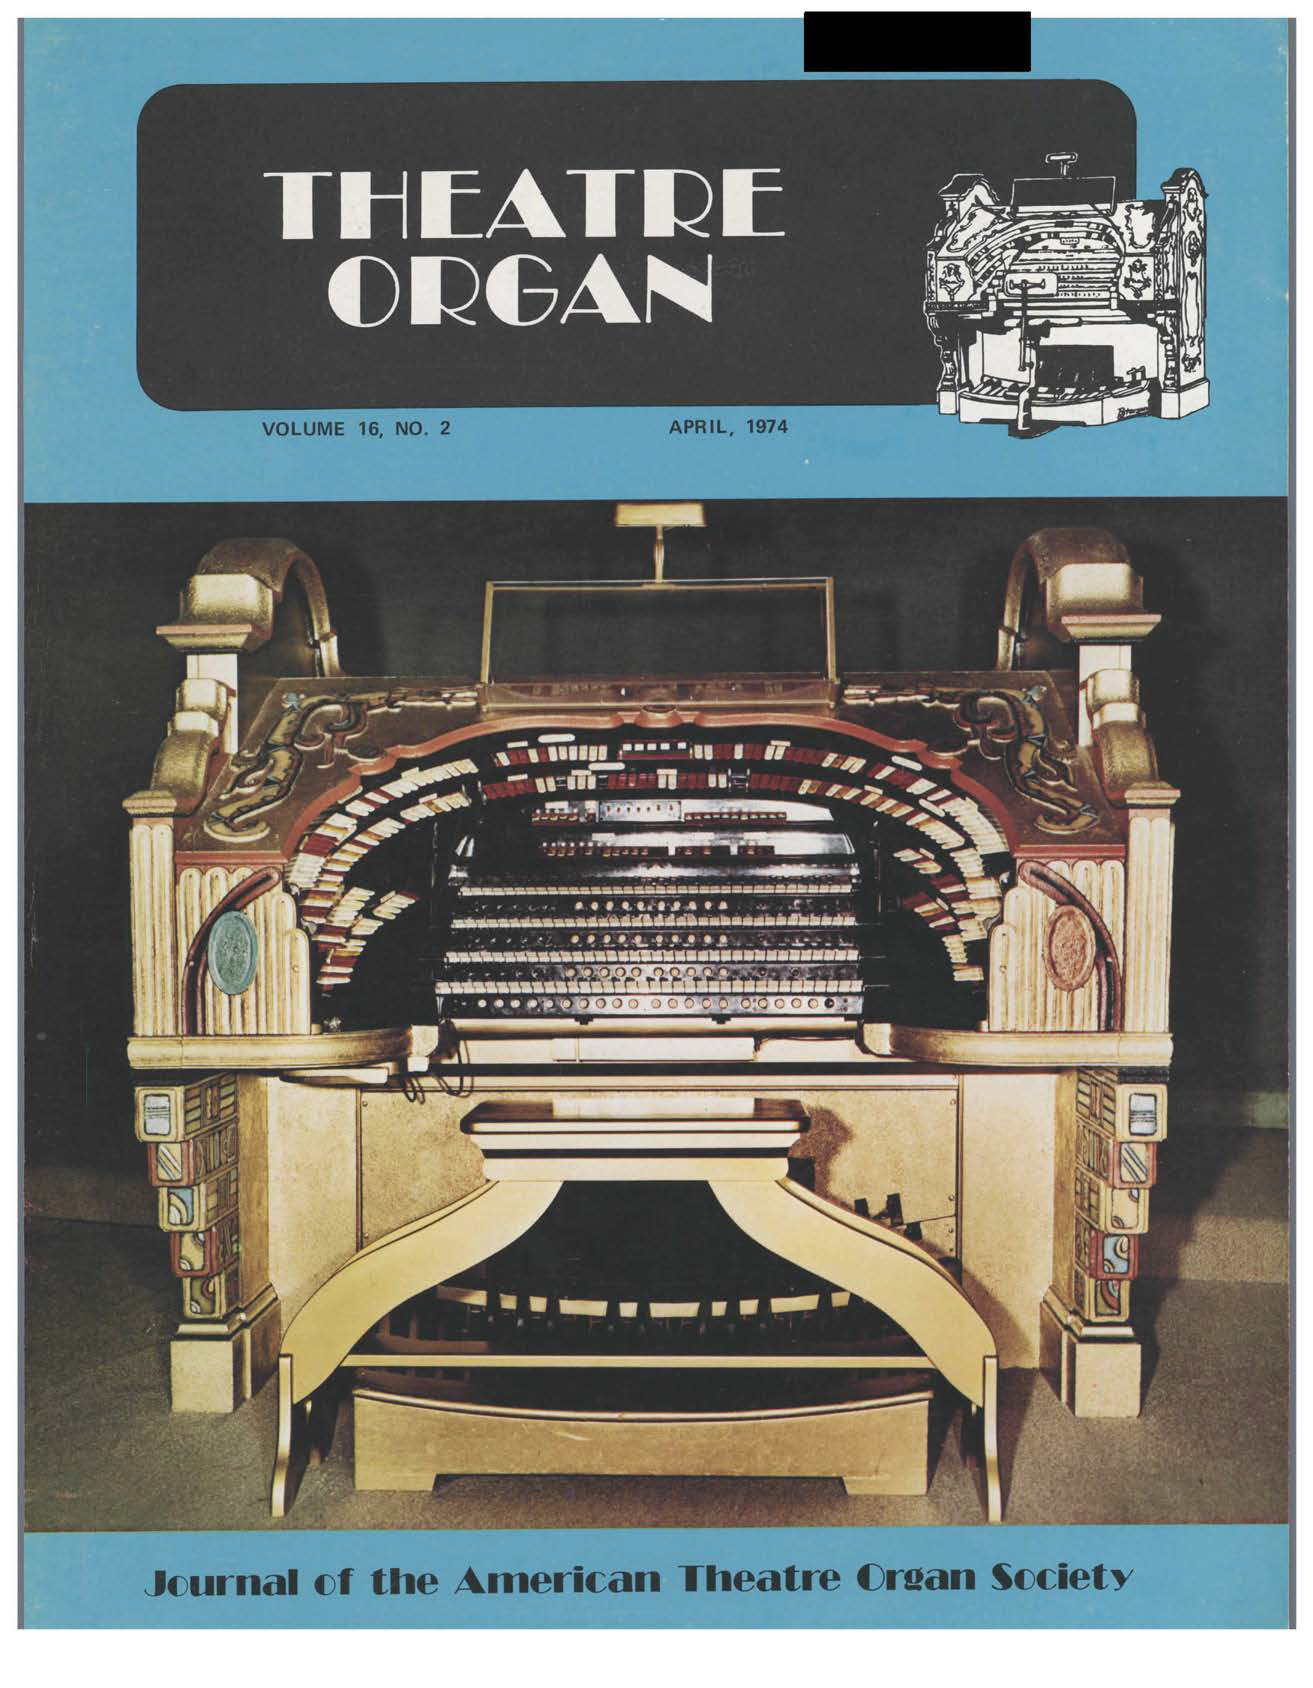 Theatre Organ, April 1974, Volume 16, Number 2 Cover